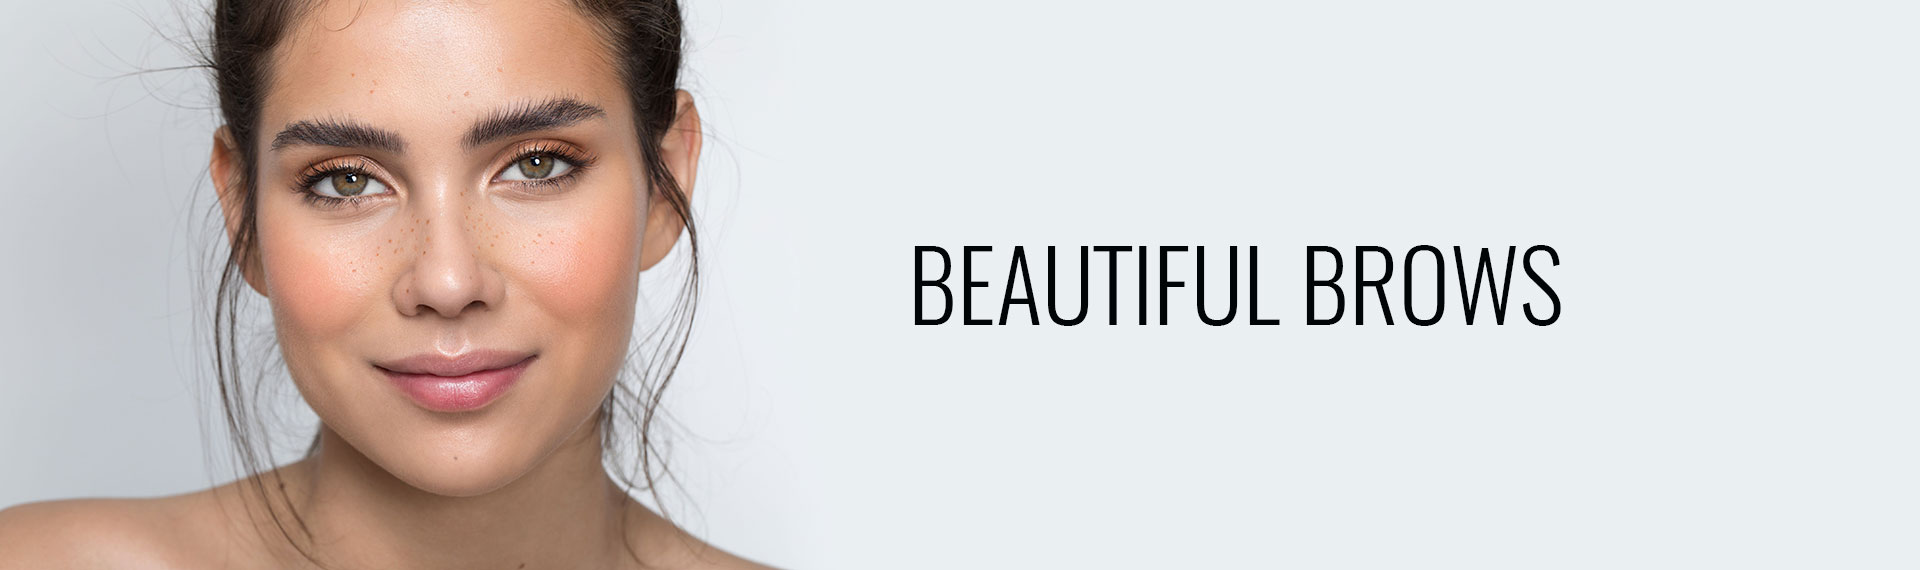 Beautiful Brows inner banner 2